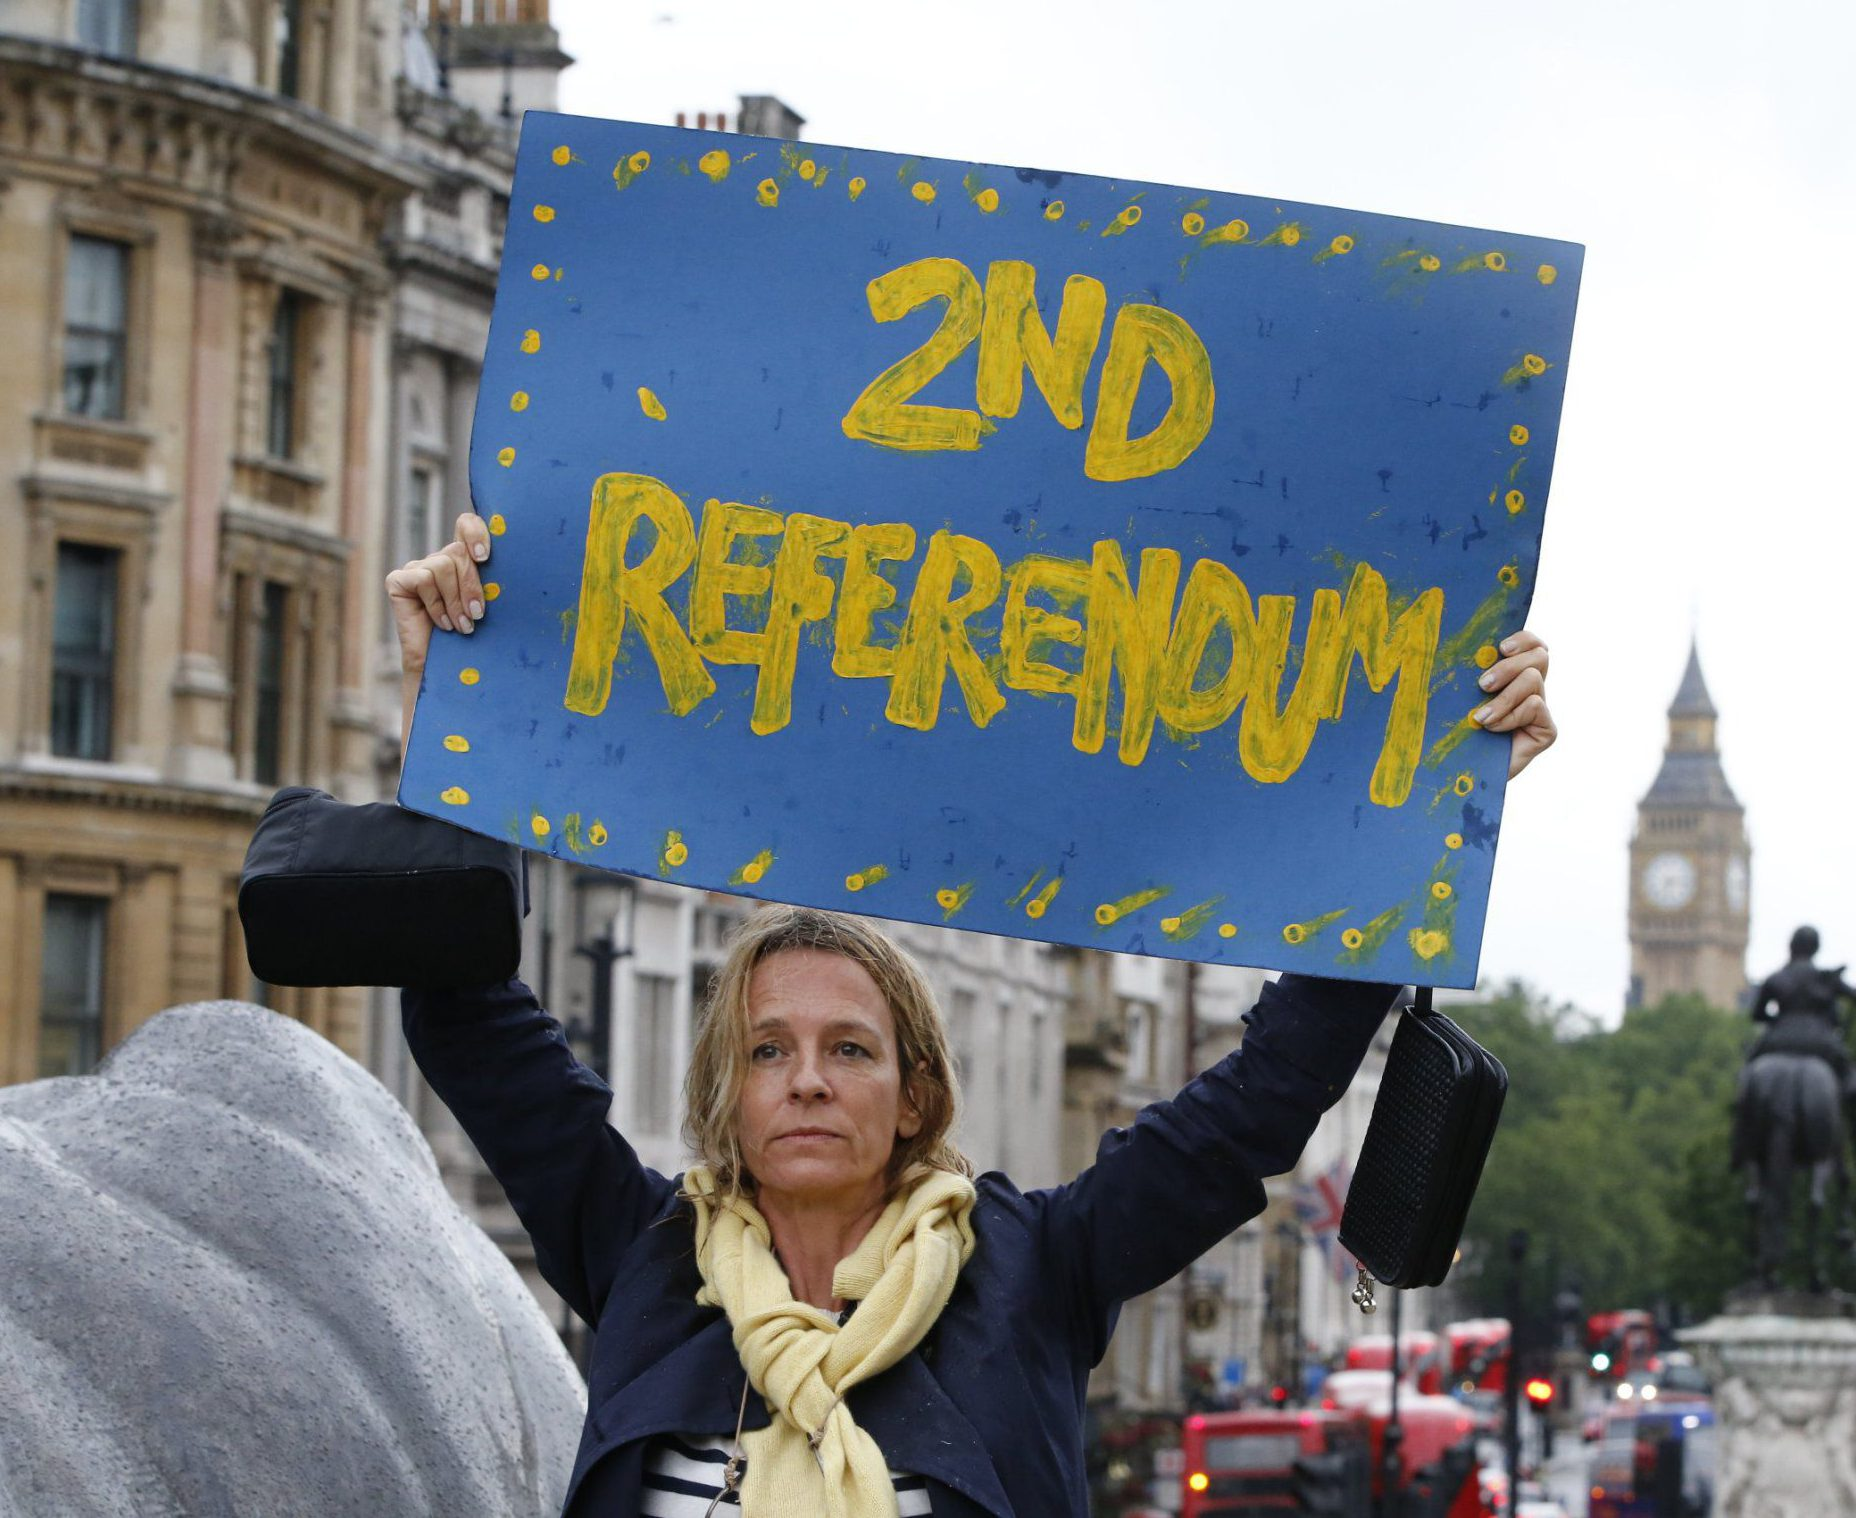 #marchforeurope Mandatory Credit: Photo by Tolga Akmen/LNP/REX/Shutterstock (5738255t)nPro-EU campaigners protest against Britain leaving the European Union in Trafalgar Square, London on Tuesday, 28 June 2016 after losing the EU referendum. The referendum was won by the leave campaign and caused Prime Minister David Cameron to resign on 23 June 2016.nPro-EU Rally, London, UK - 28 Jun 2016nn